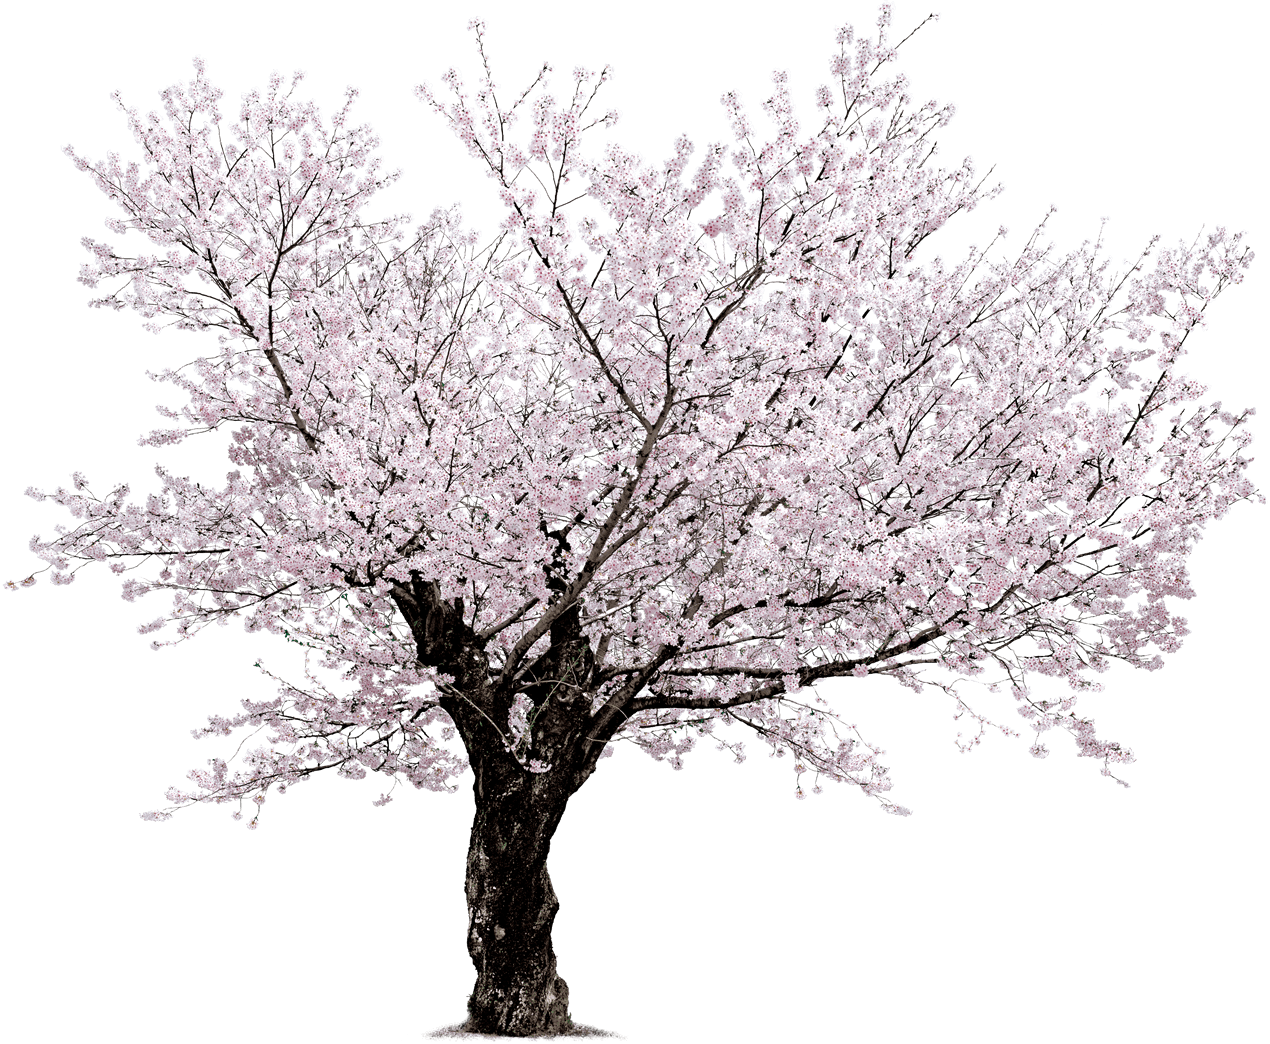 tree sakura - Cherry Blossom Tree PNG HD